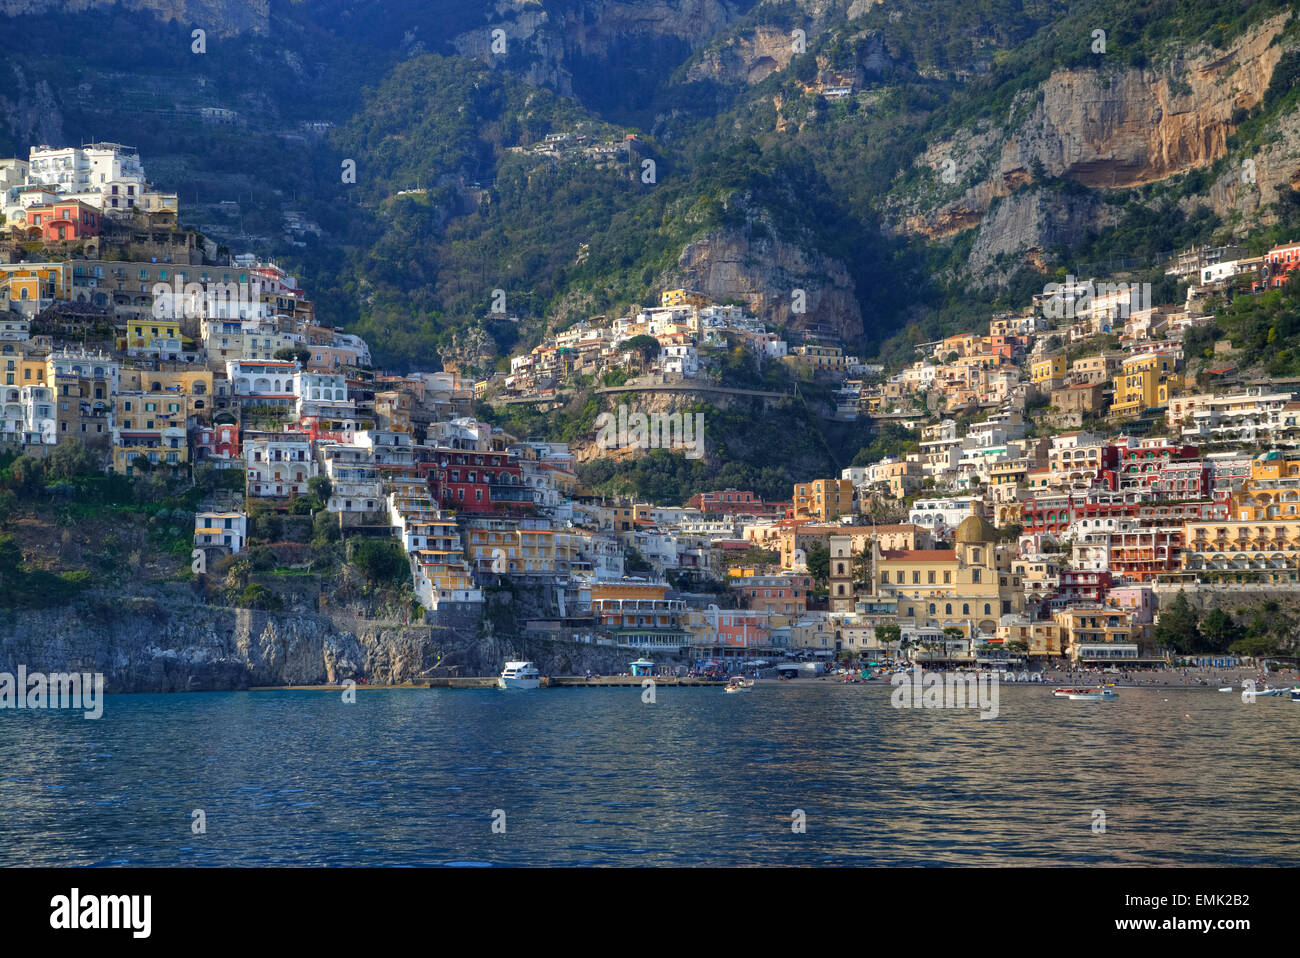 Positano, Coast of Amalfi, Salerno, Campania, Italy Stock Photo